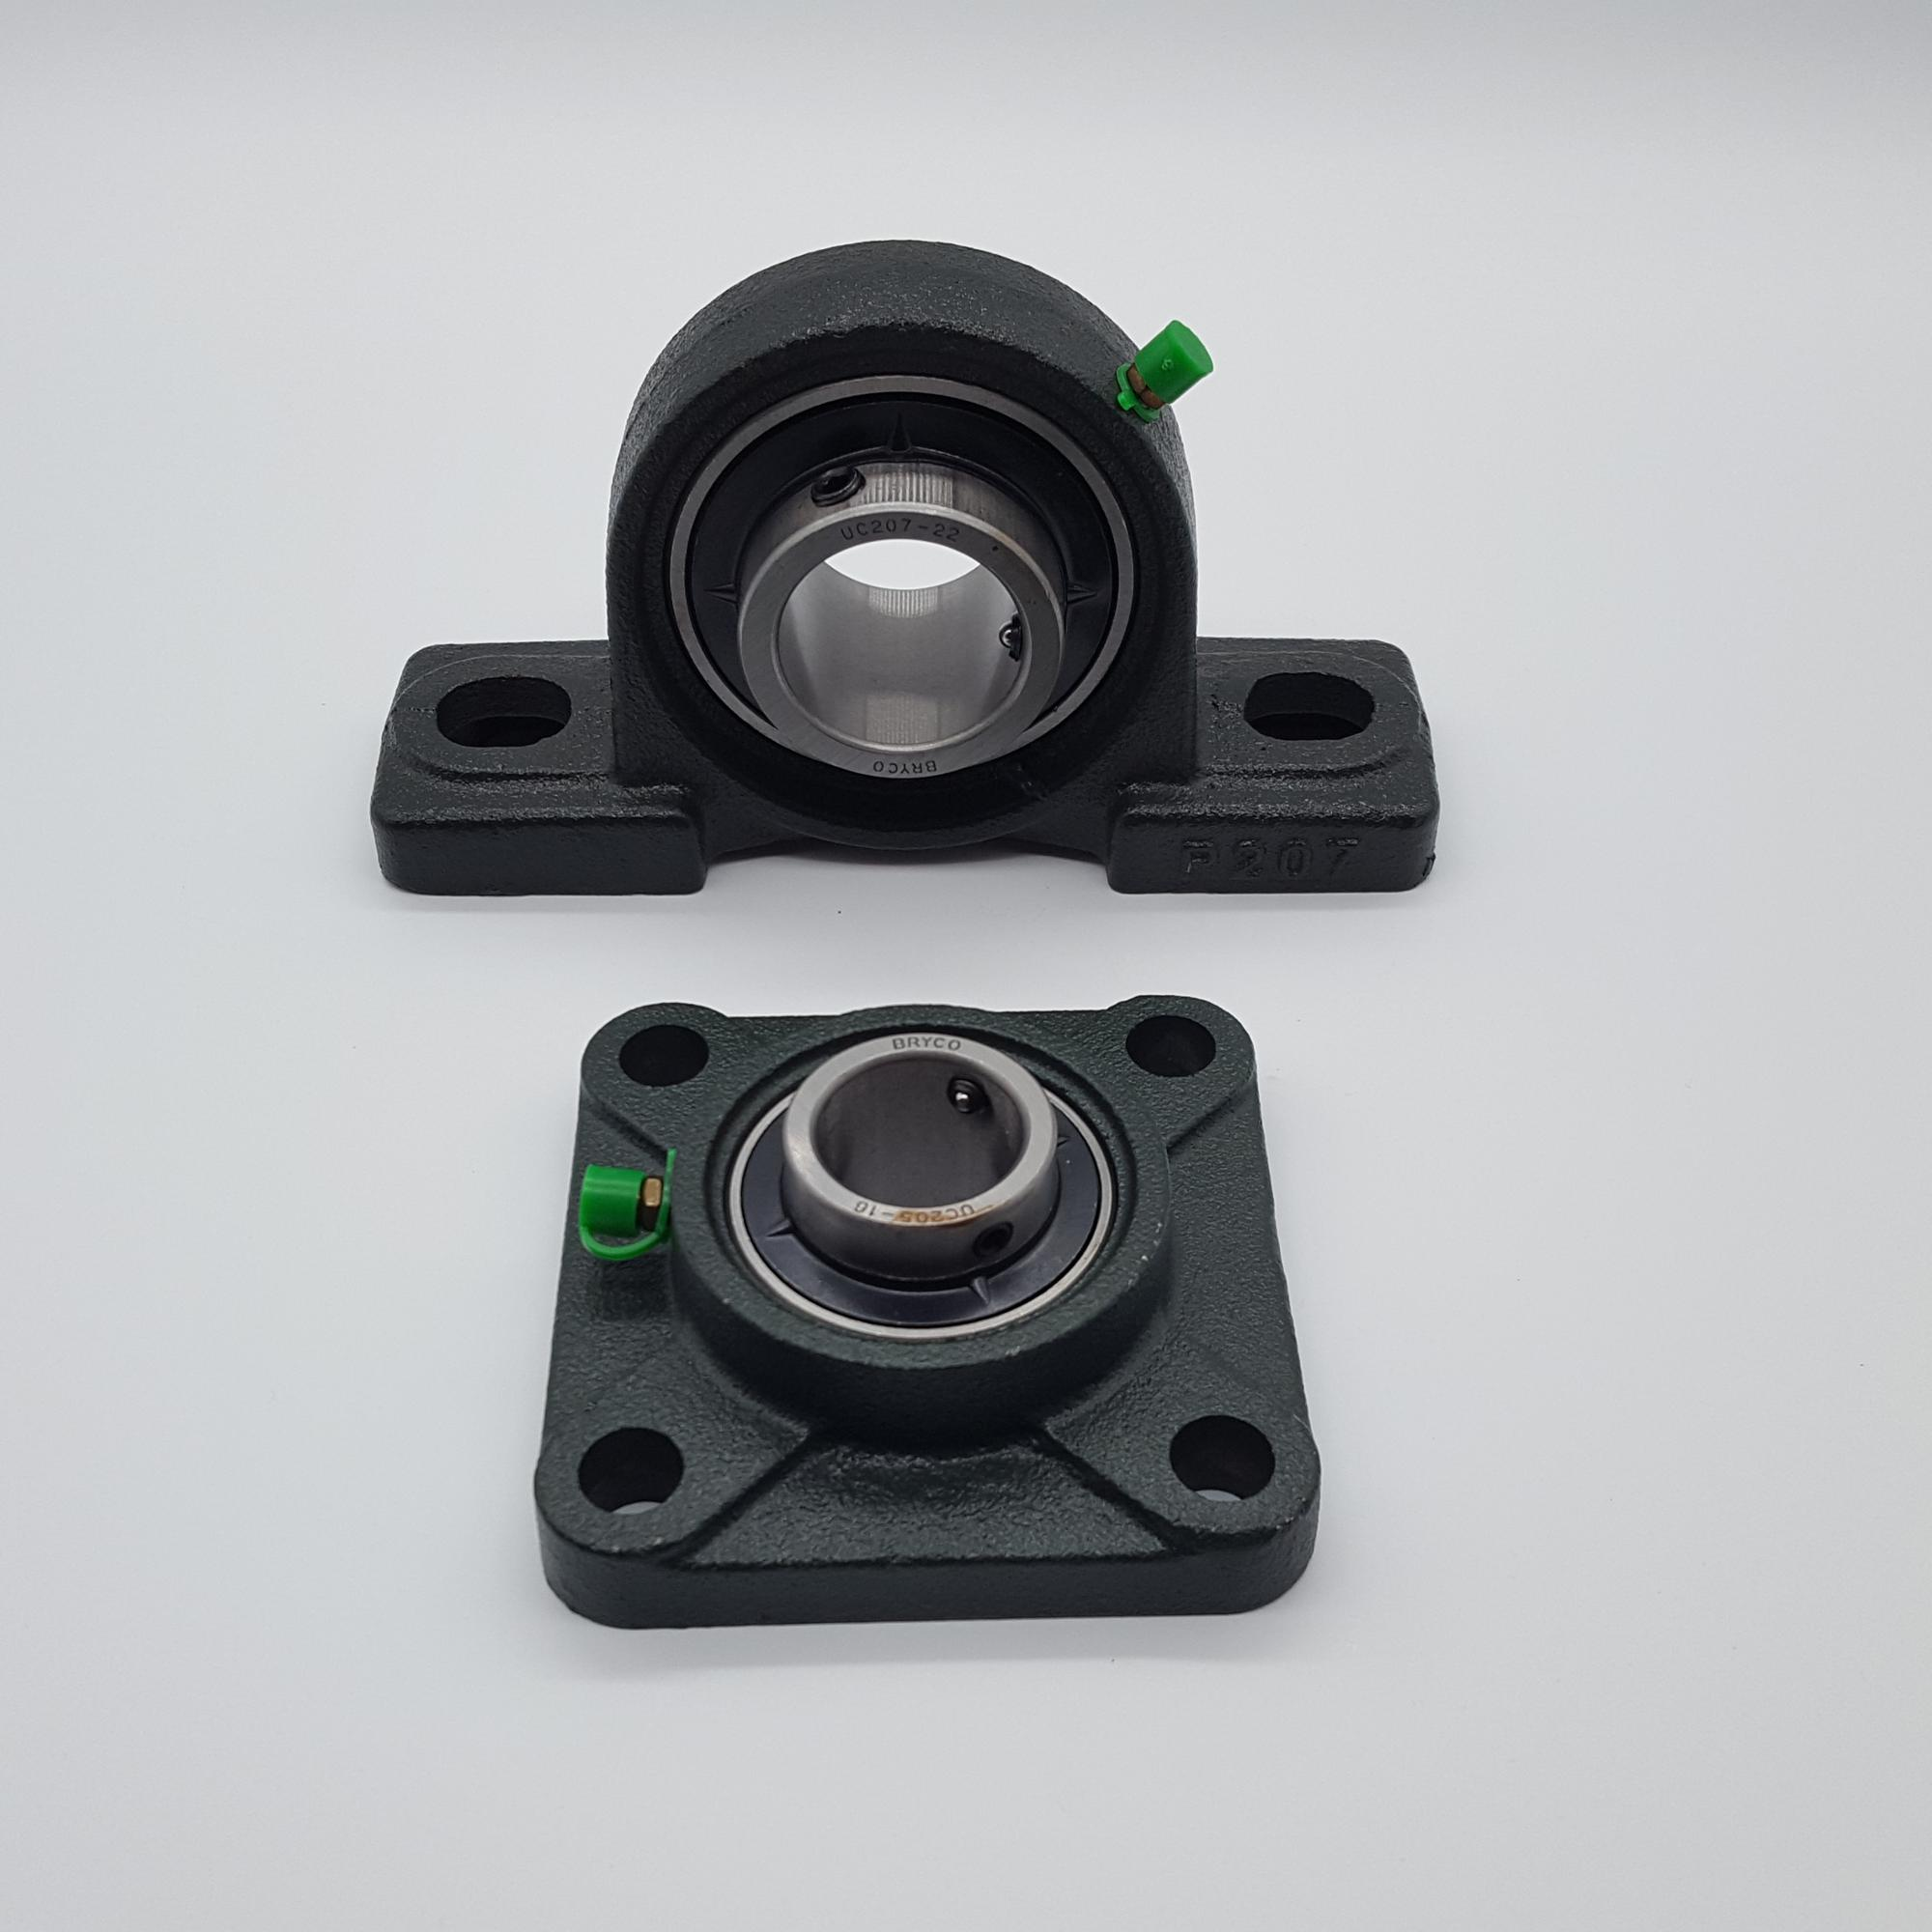 556505 Heavy Duty Clutch Parts Puller Pilot Bearing with High Temperature Grease 6306-2RS2/C5-HT 2.833 *1.179